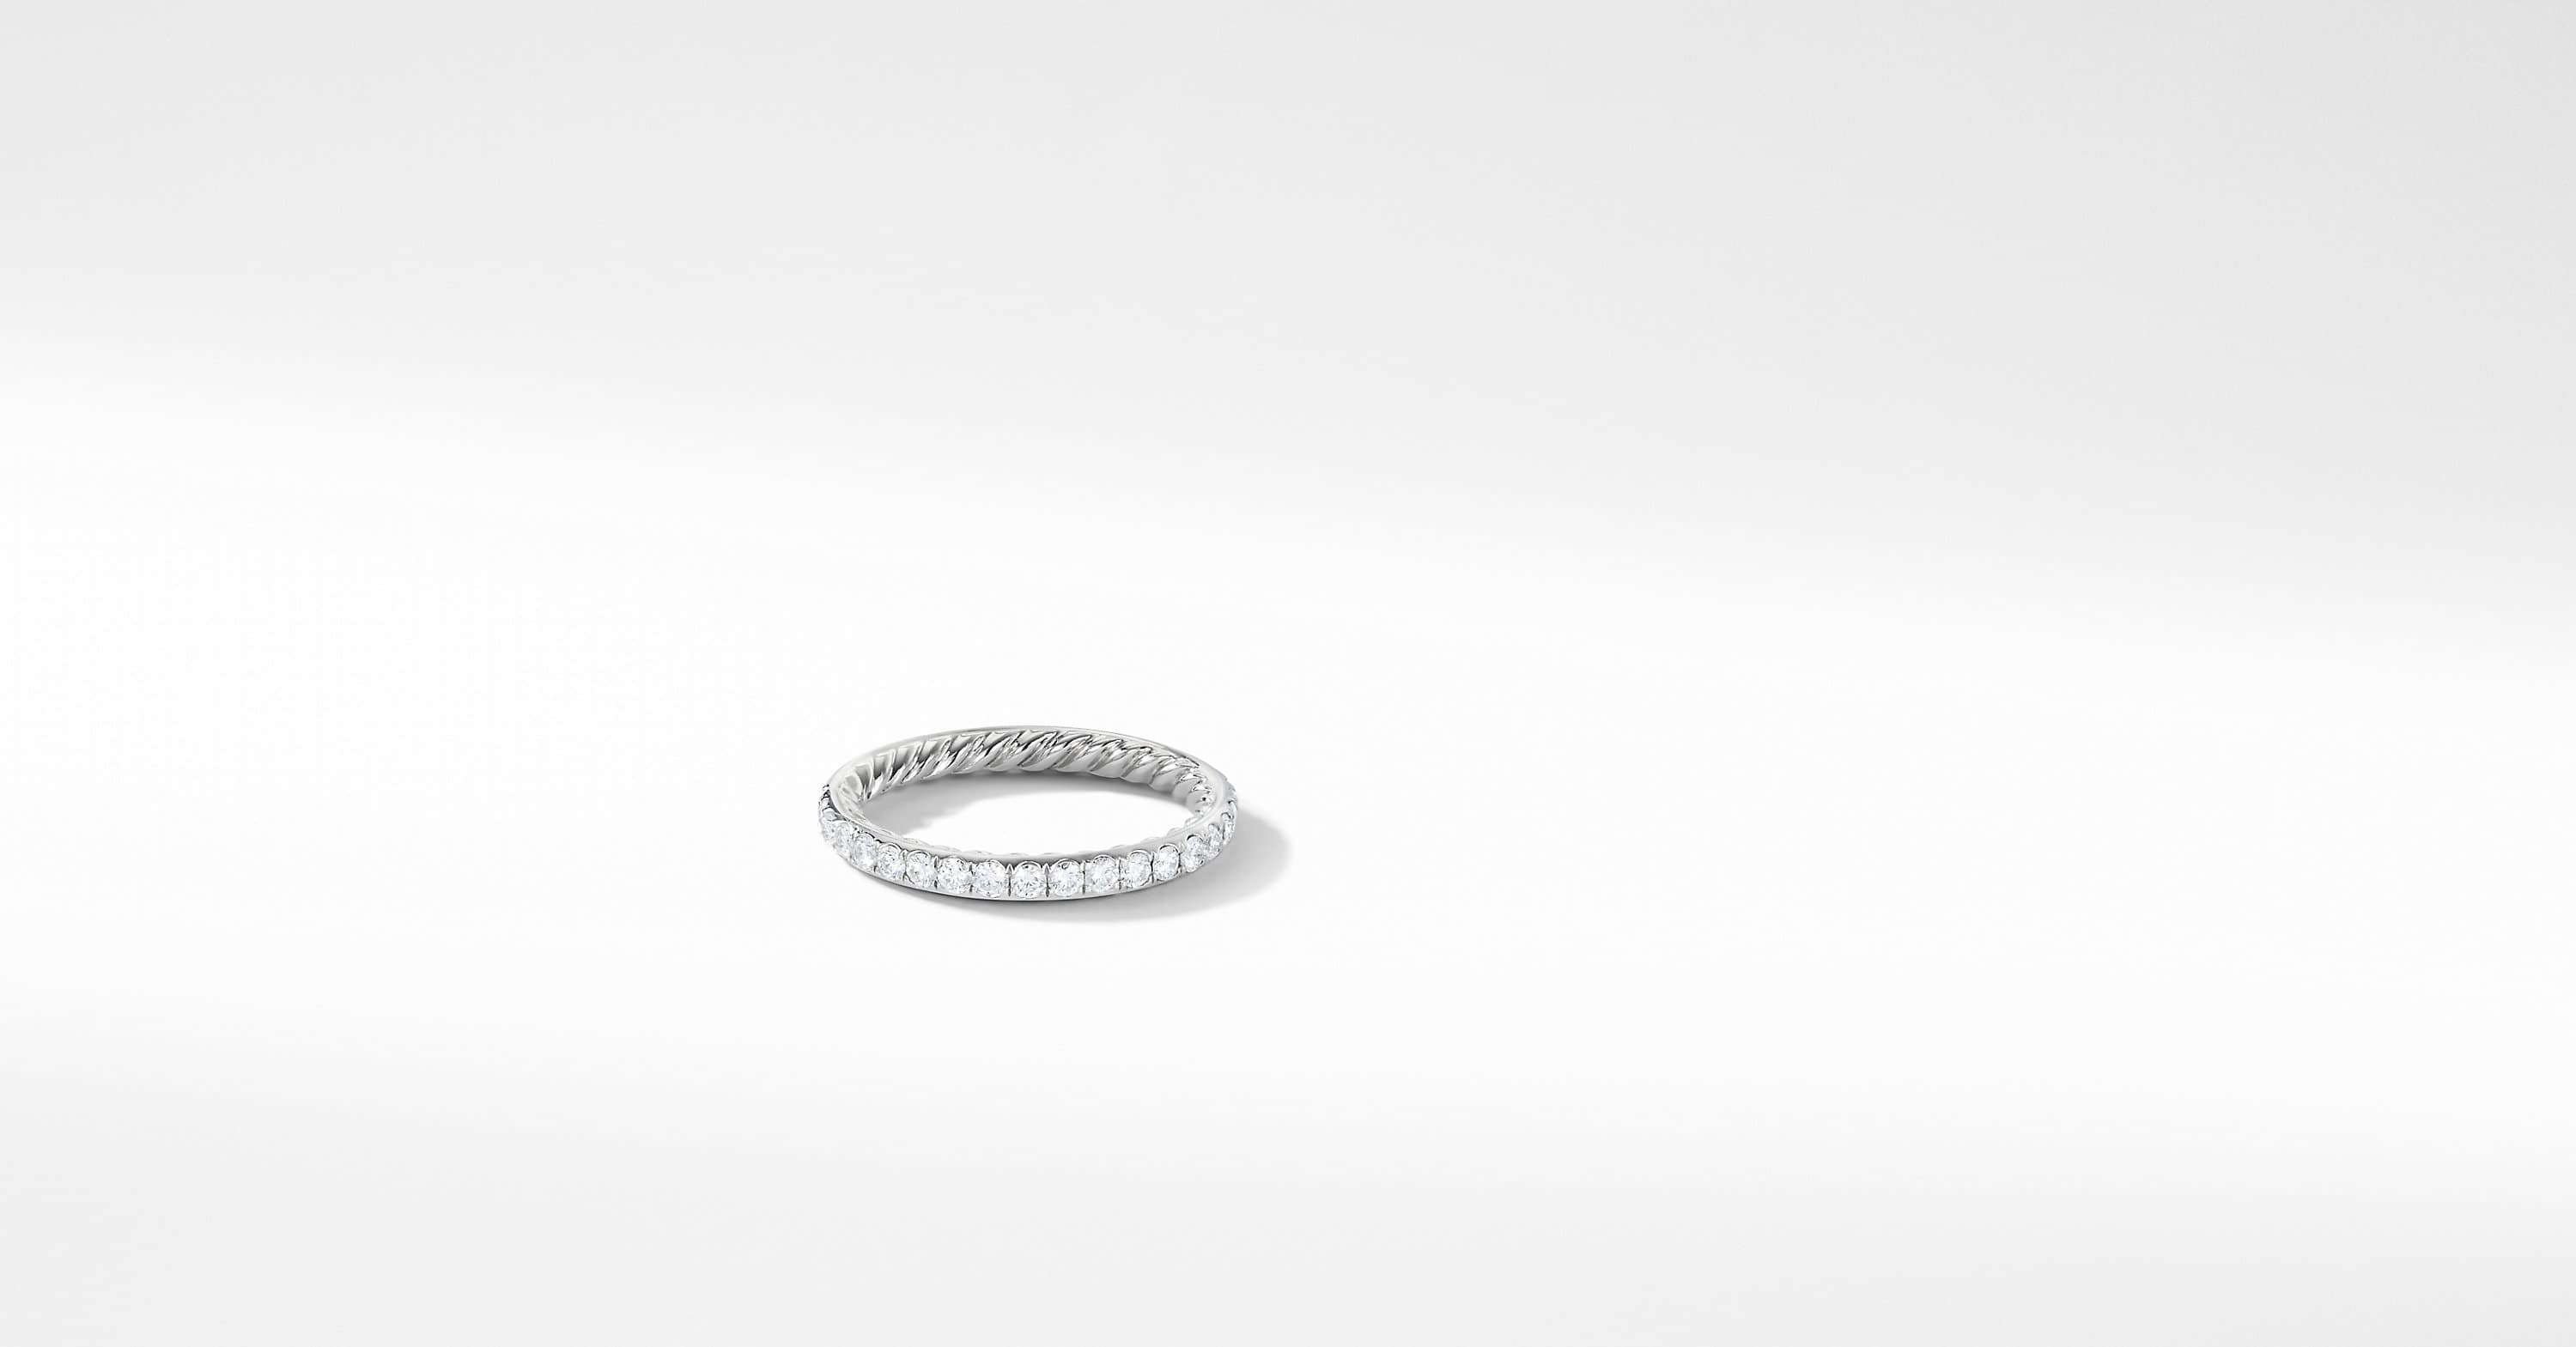 DY Eden Single Row Wedding Band with Diamonds in Platinum, 2mm